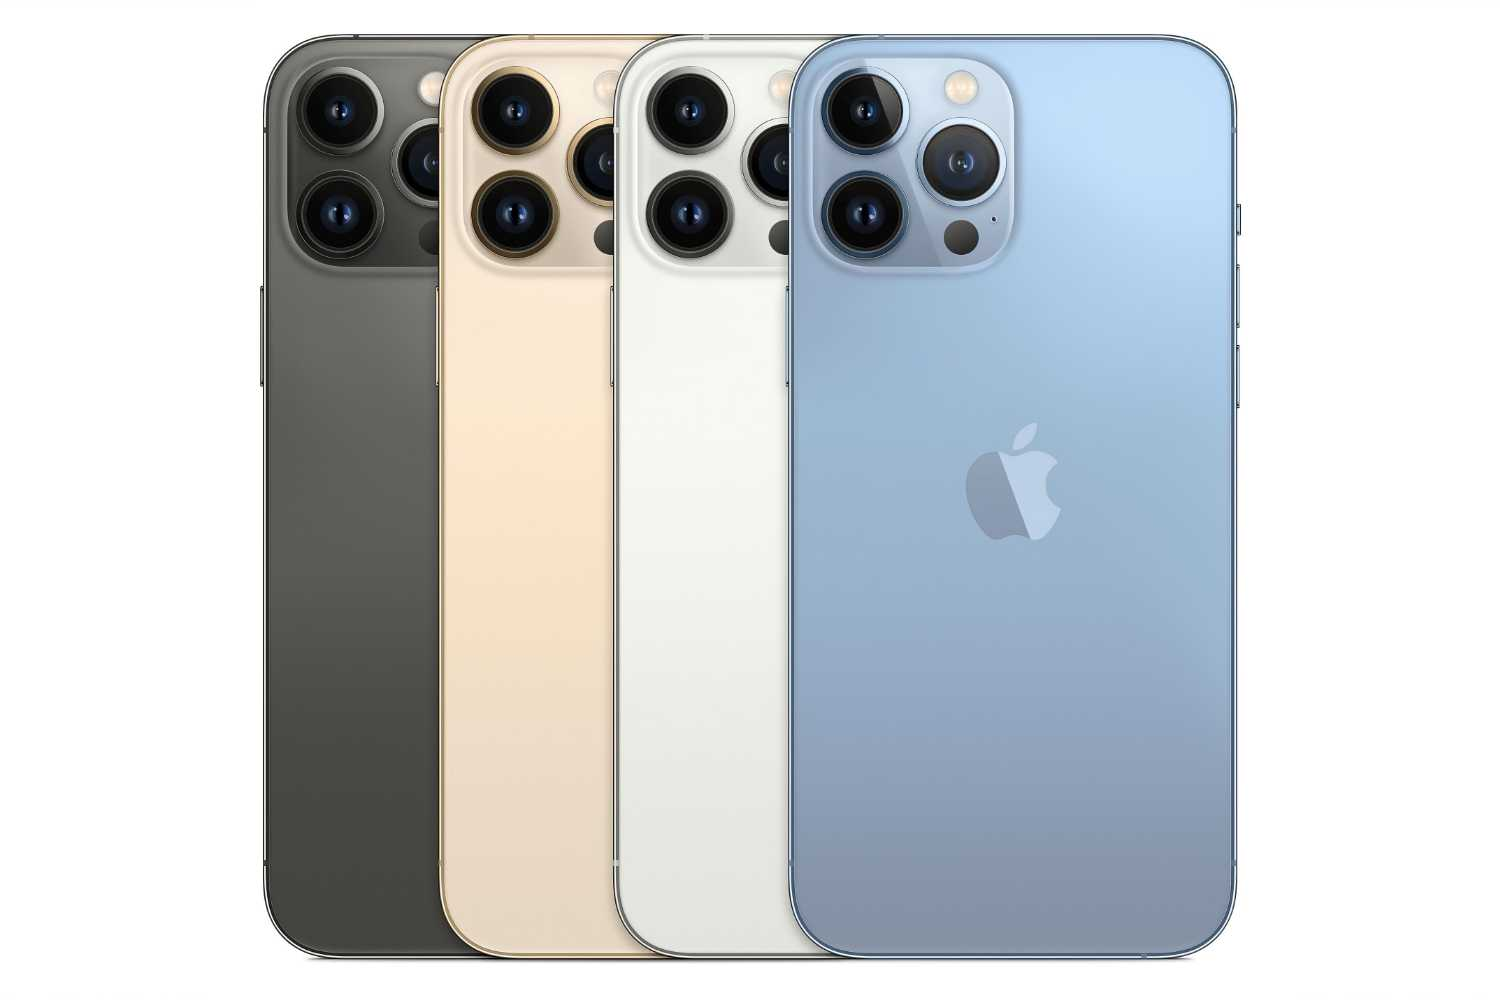 iphone 13 pro and 13 pro max